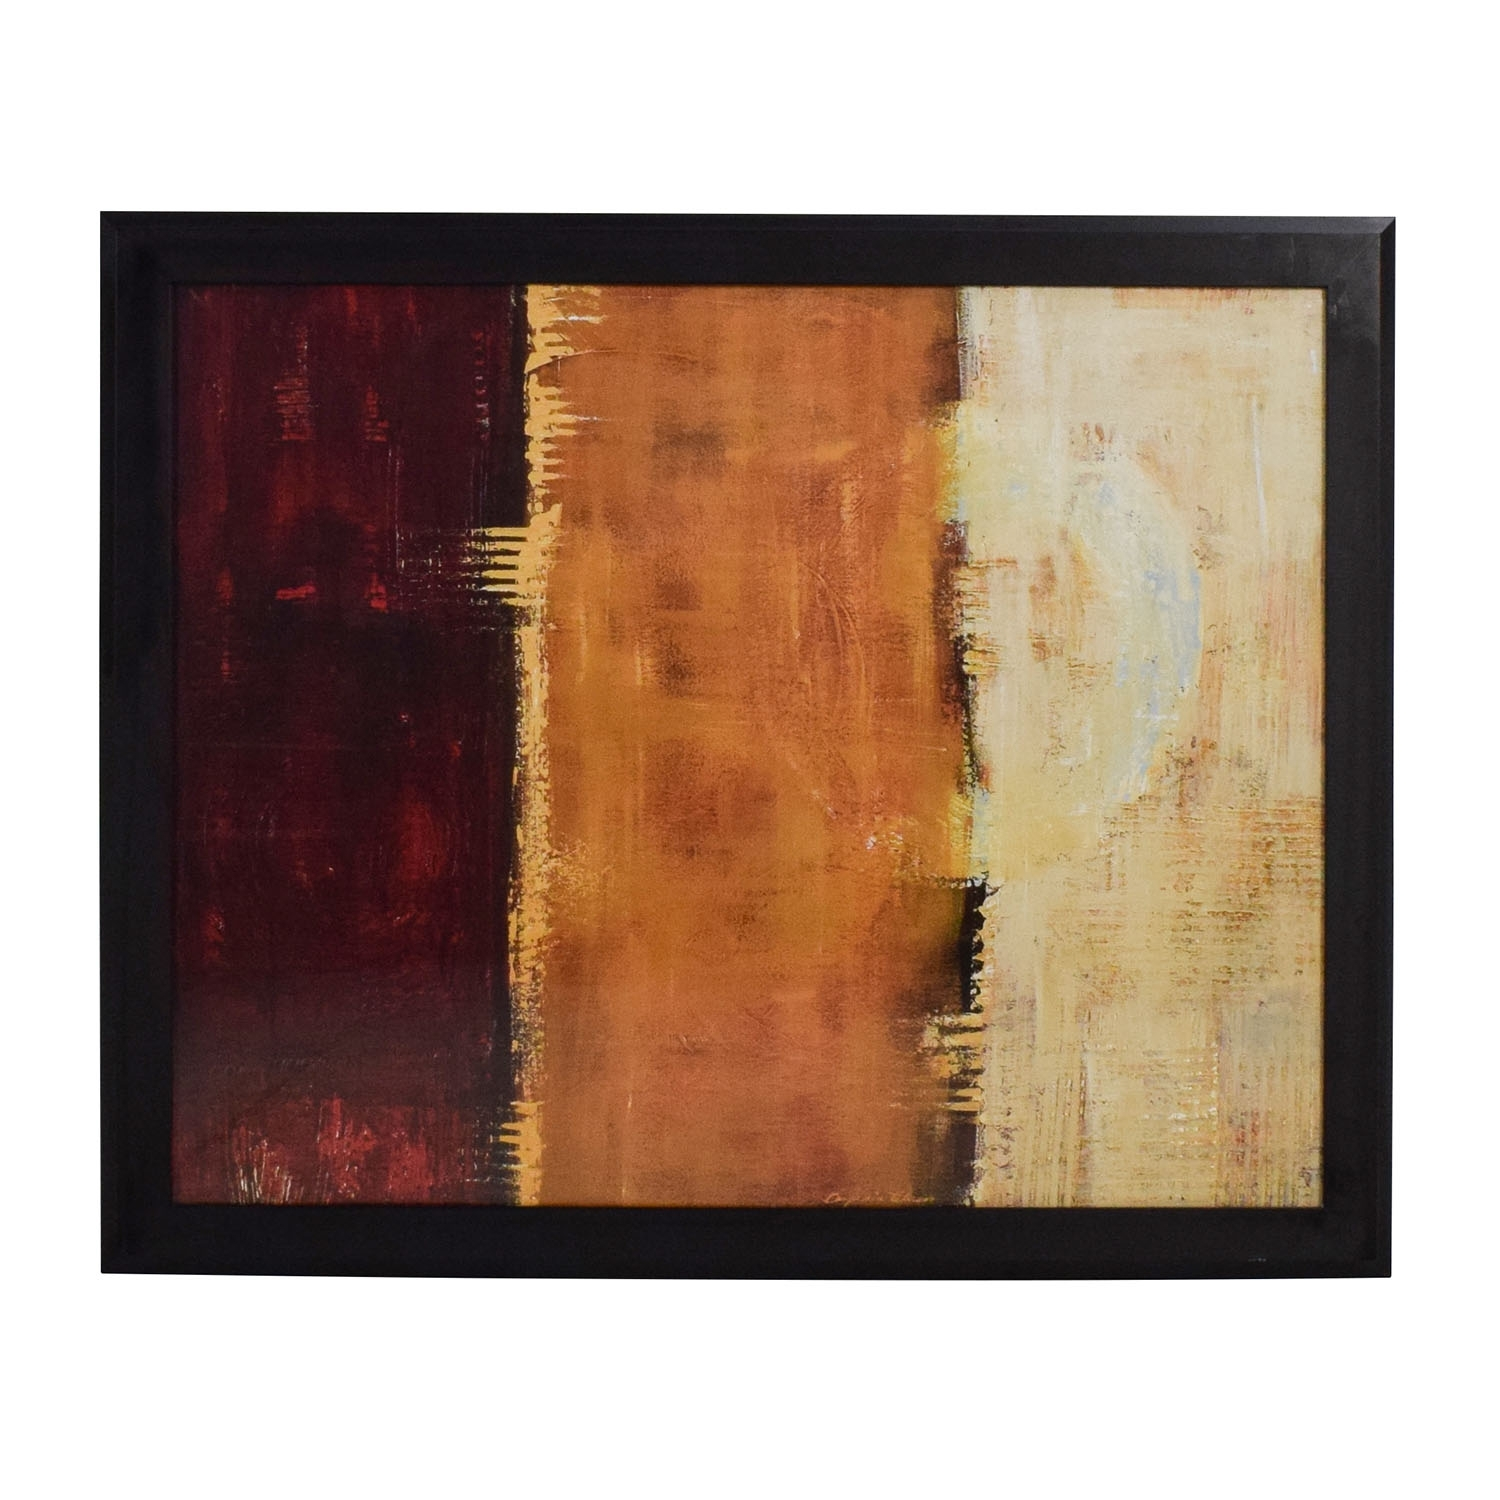 88% Off – Z Gallerie Z Gallerie Framed Canvas Red Orange Yellow Wall With Regard To Latest Z Gallerie Wall Art (Gallery 12 of 15)